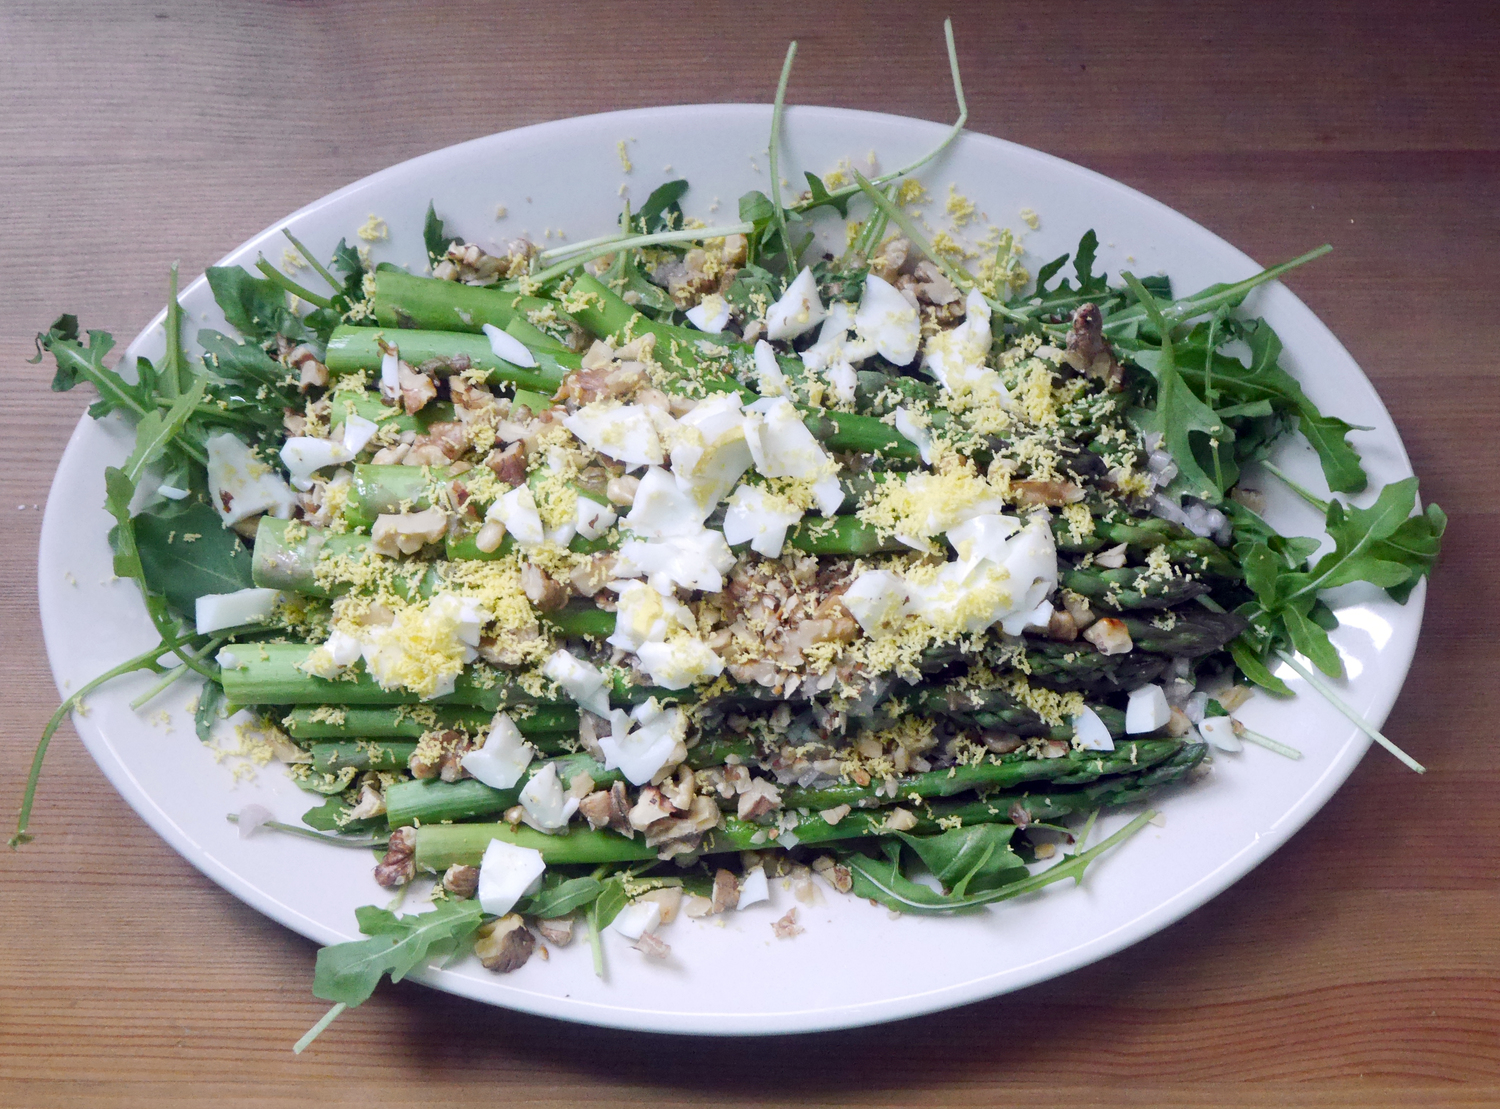 Warm Asparagus & Walnut Salad